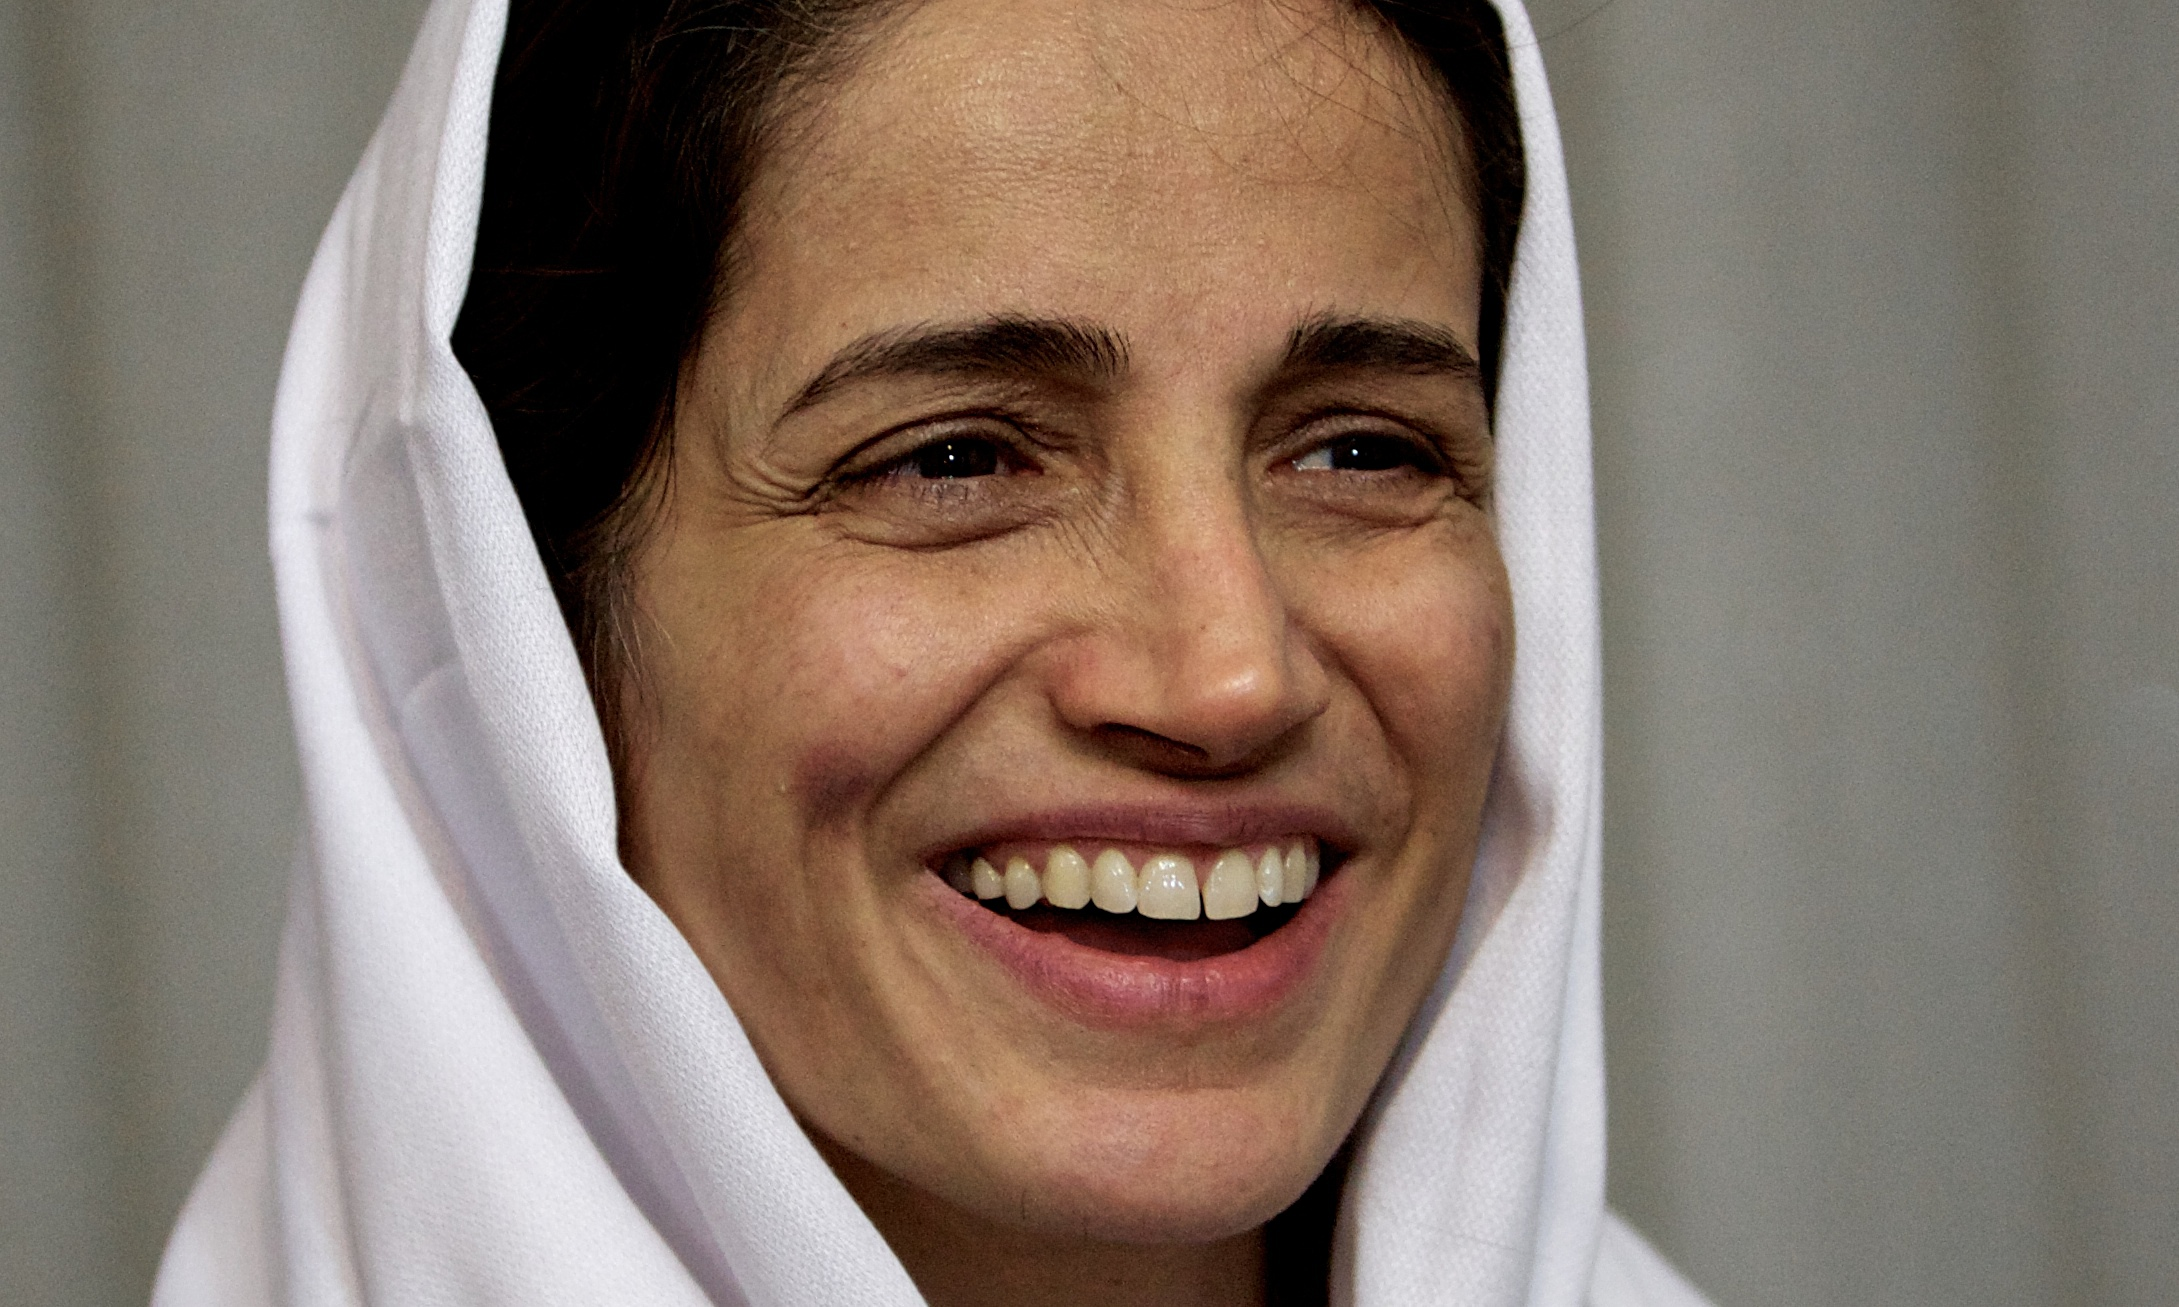 https://image.guim.co.uk/sys-images/Guardian/Pix/pictures/2014/10/25/1414255814831/Nasrin-Sotoudeh-was-tempo-012.jpg